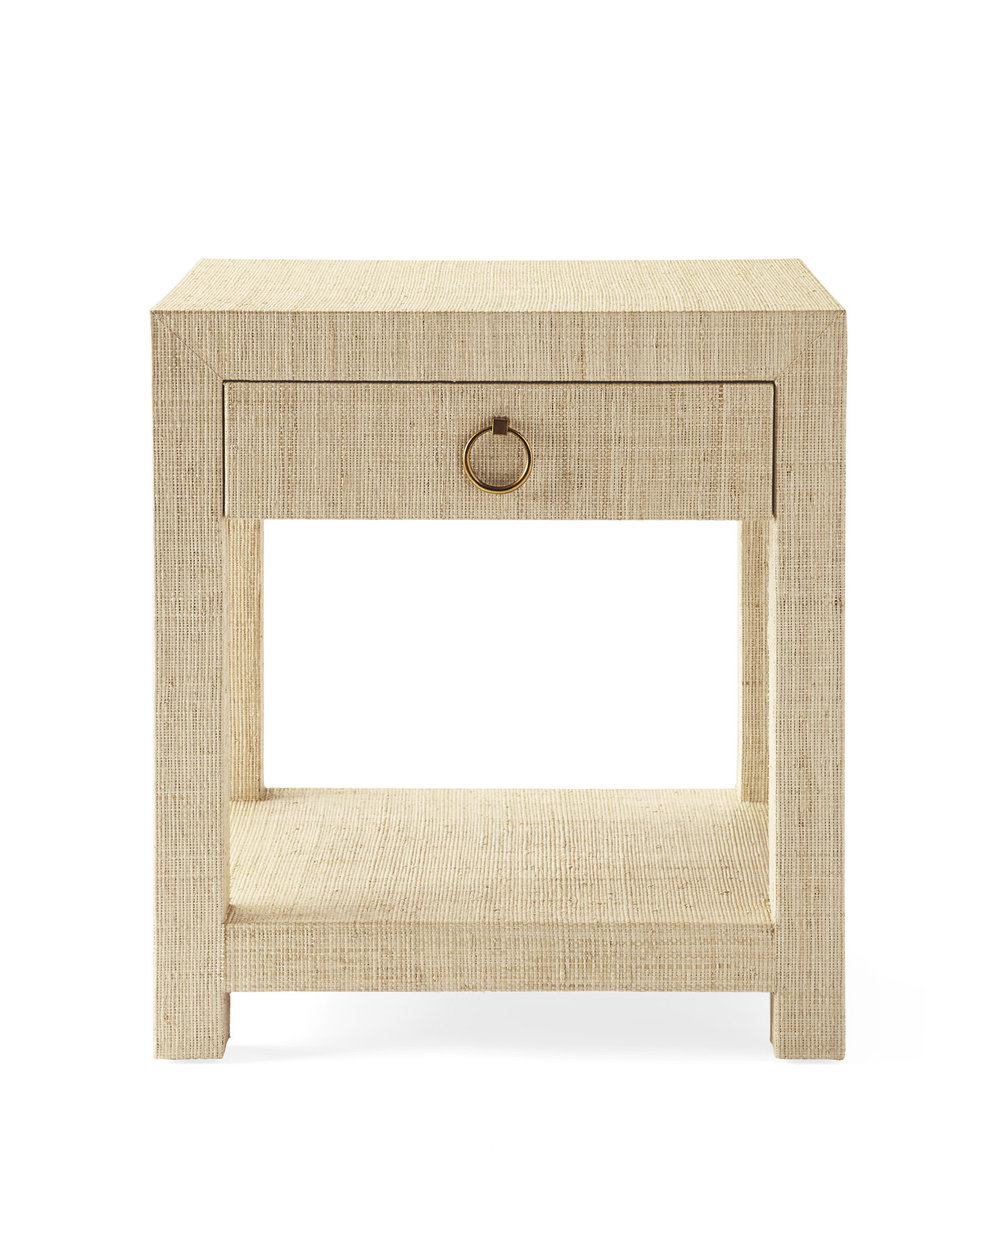 PR_Blake_Raffia_Side_Table_with_Drawer_Front_MV_0621_Crop_SH.jpg